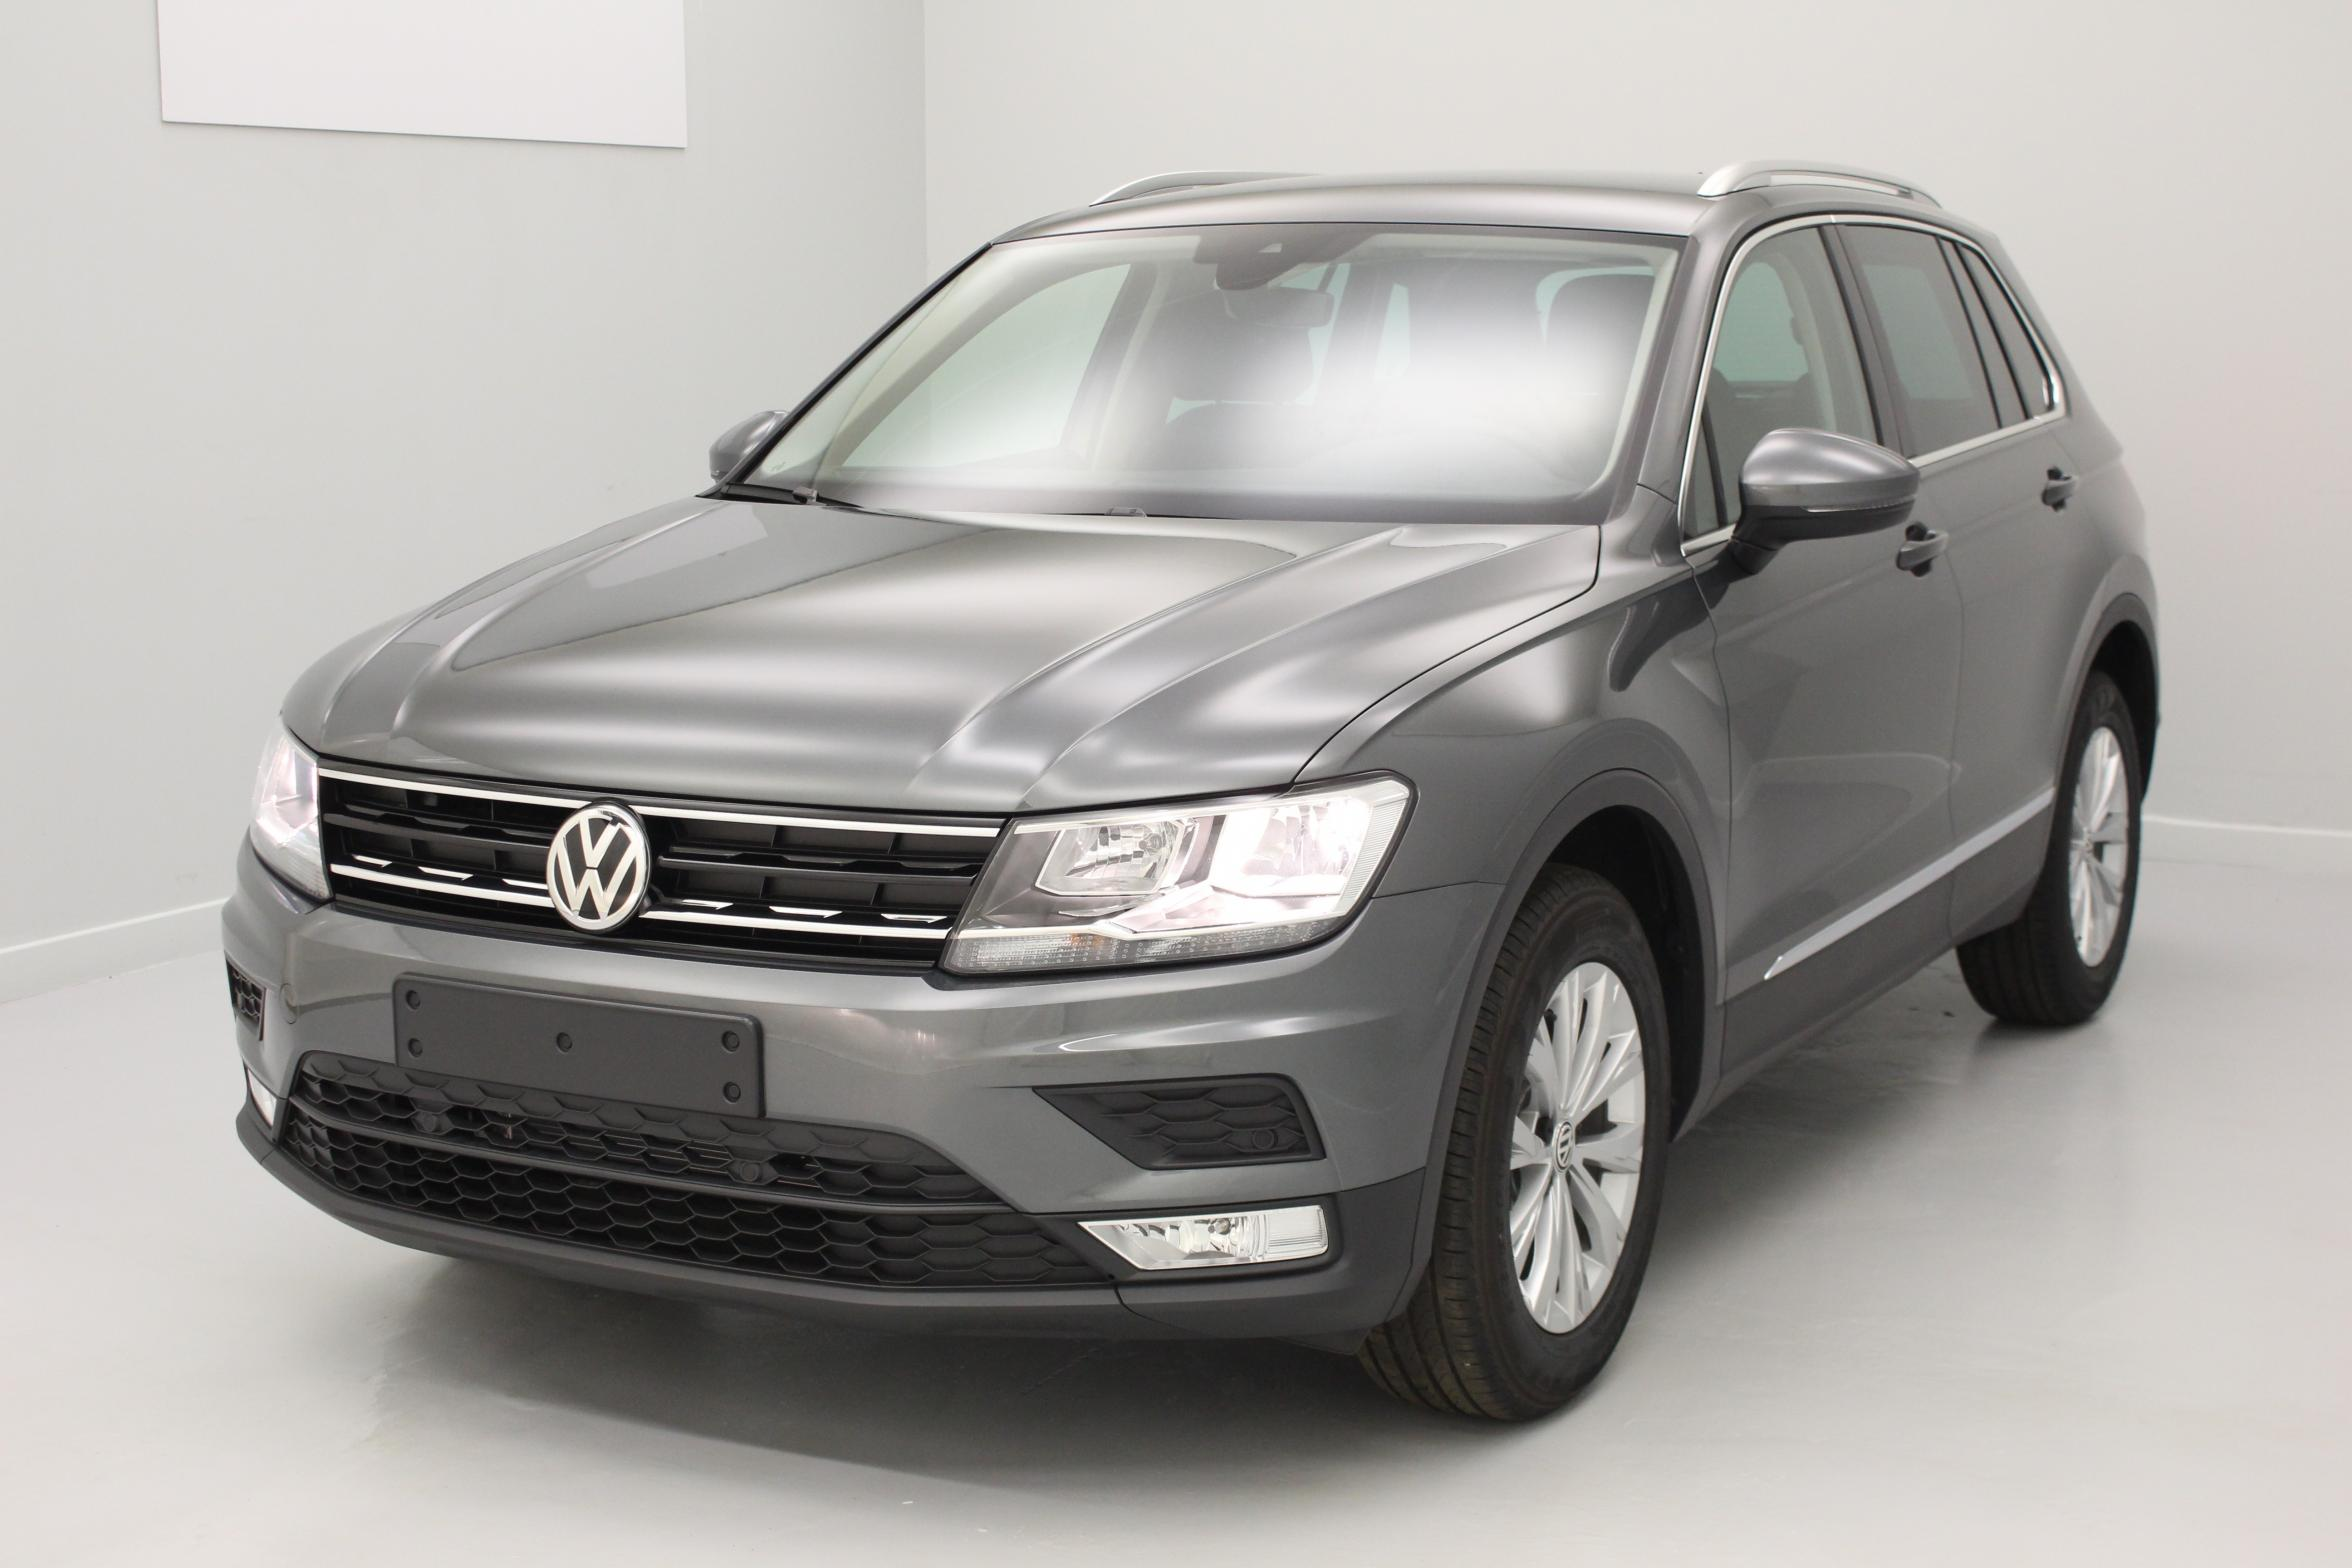 volkswagen nouveau tiguan 2 0 tdi 150 bmt trendline gris indium discover media climatronic. Black Bedroom Furniture Sets. Home Design Ideas